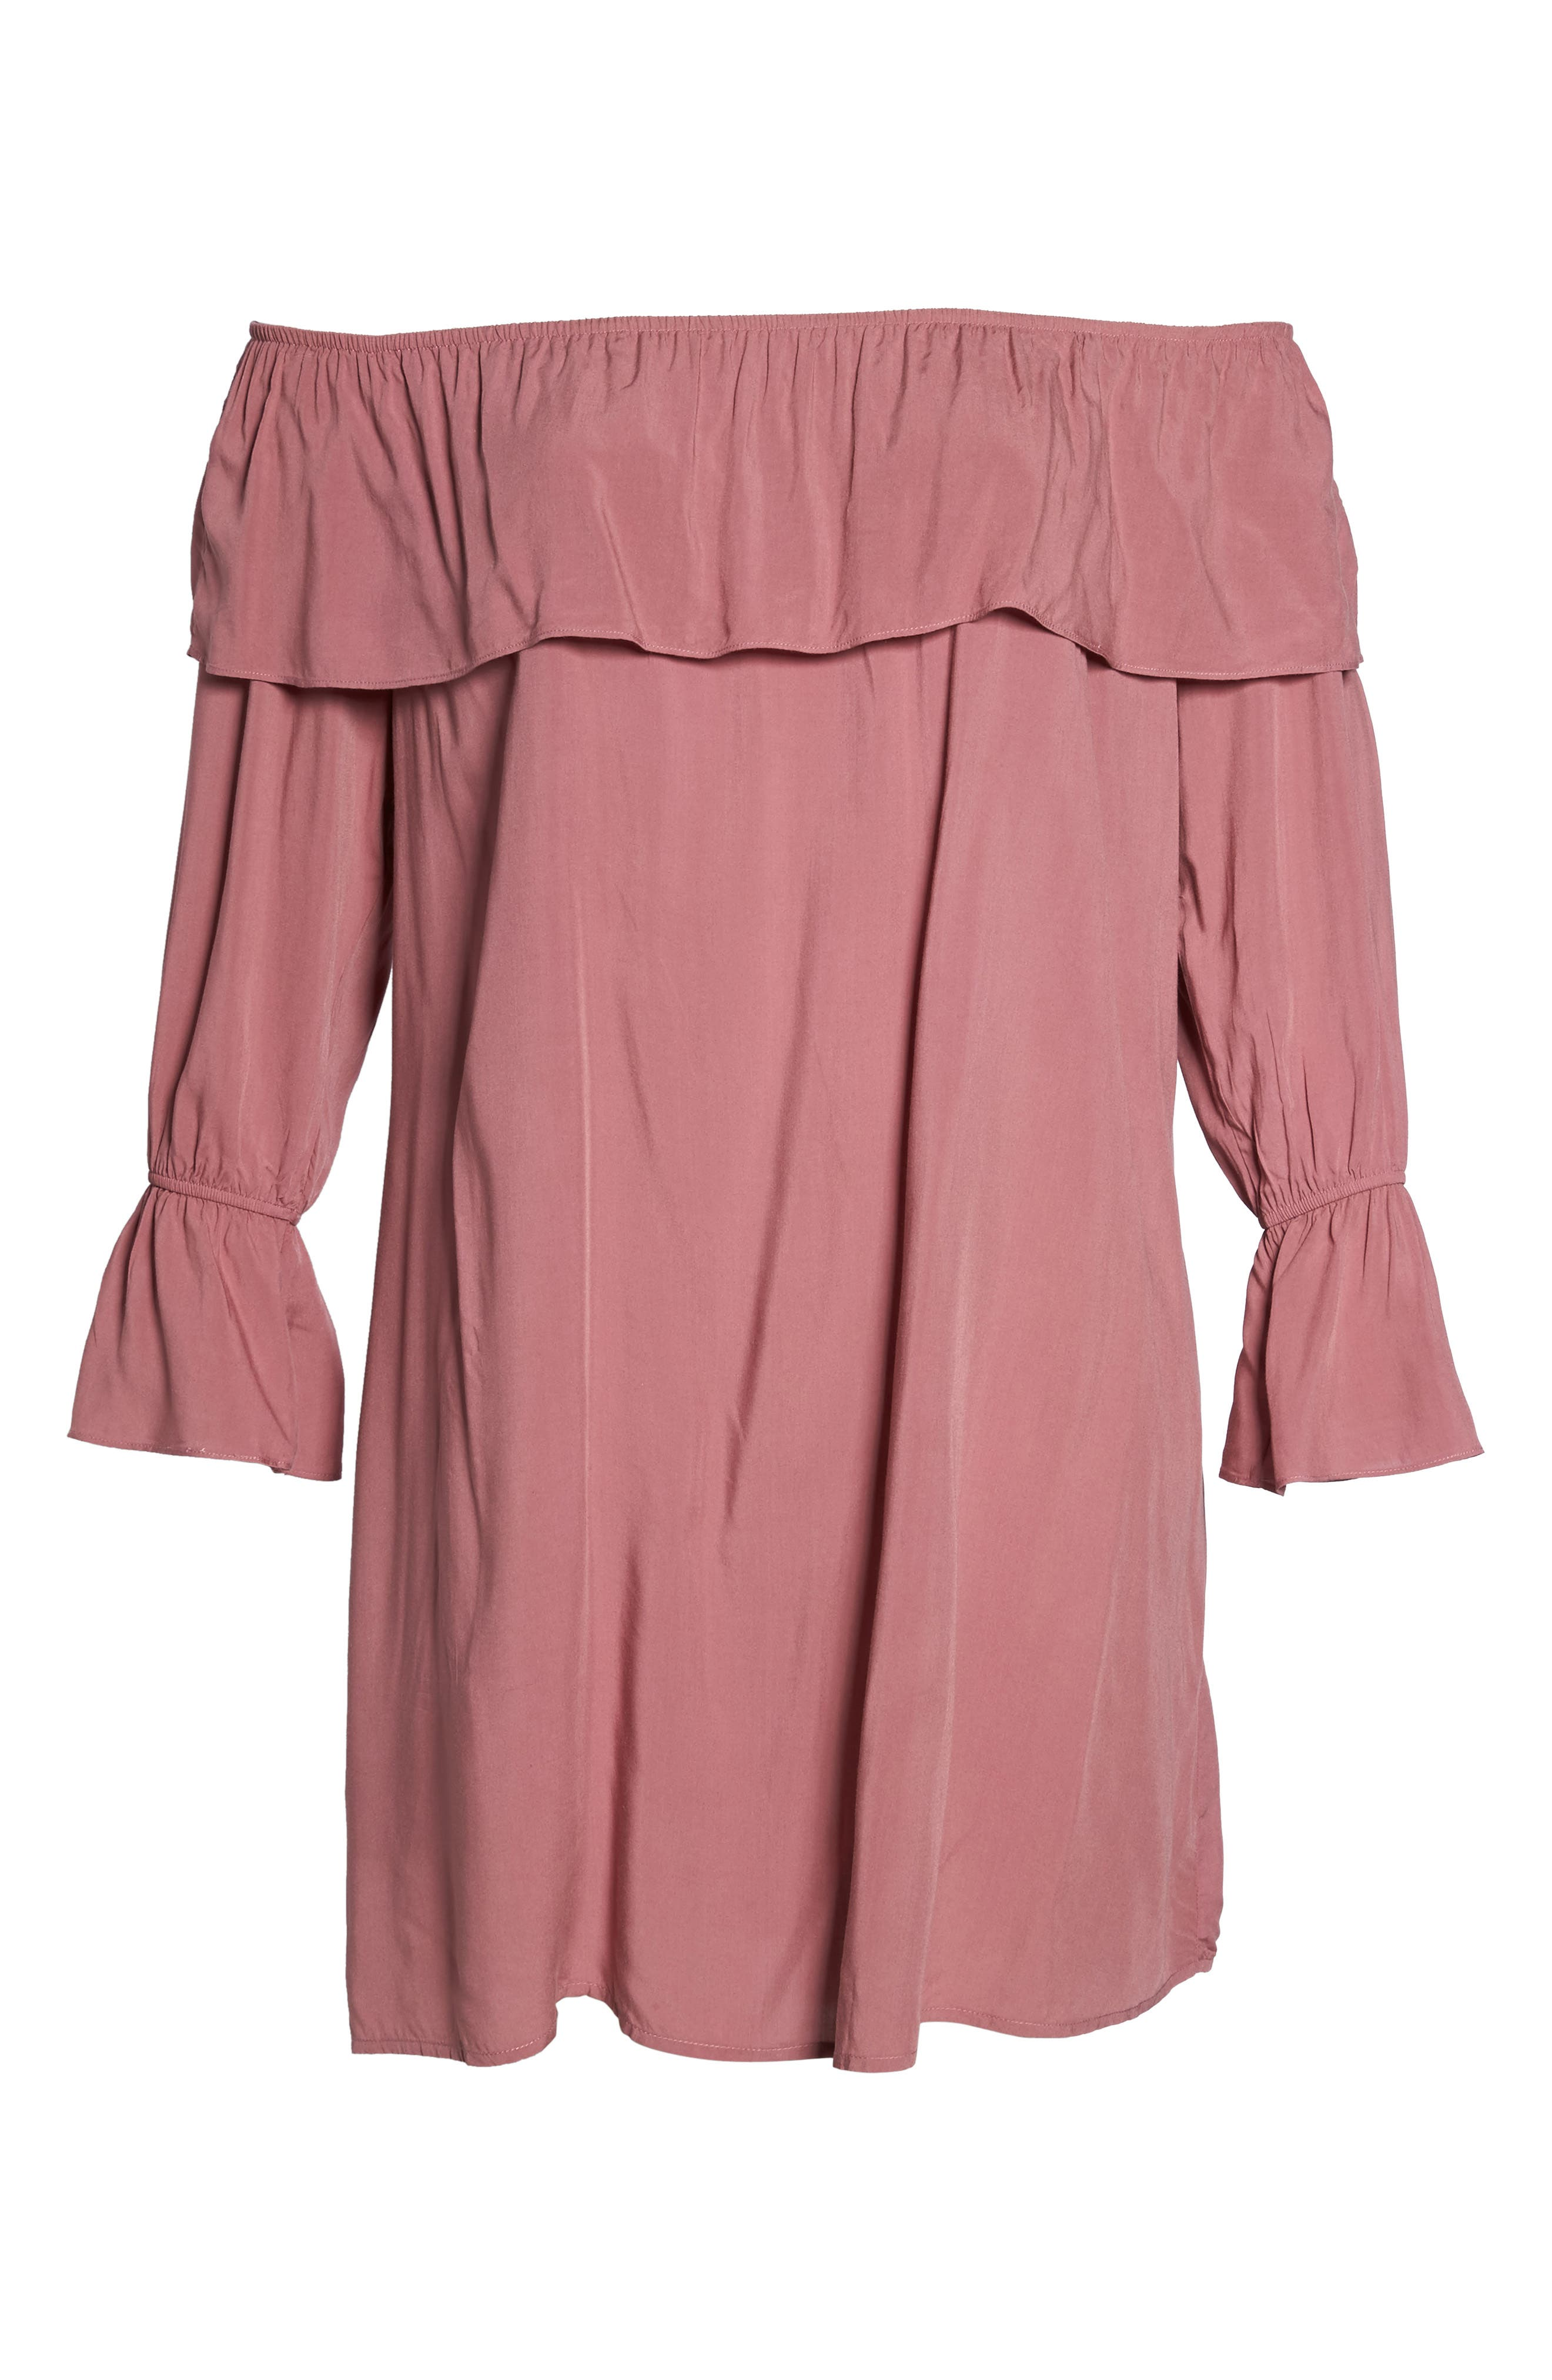 Ruffle Off-the-Shoulder Shift Dress,                             Alternate thumbnail 6, color,                             651